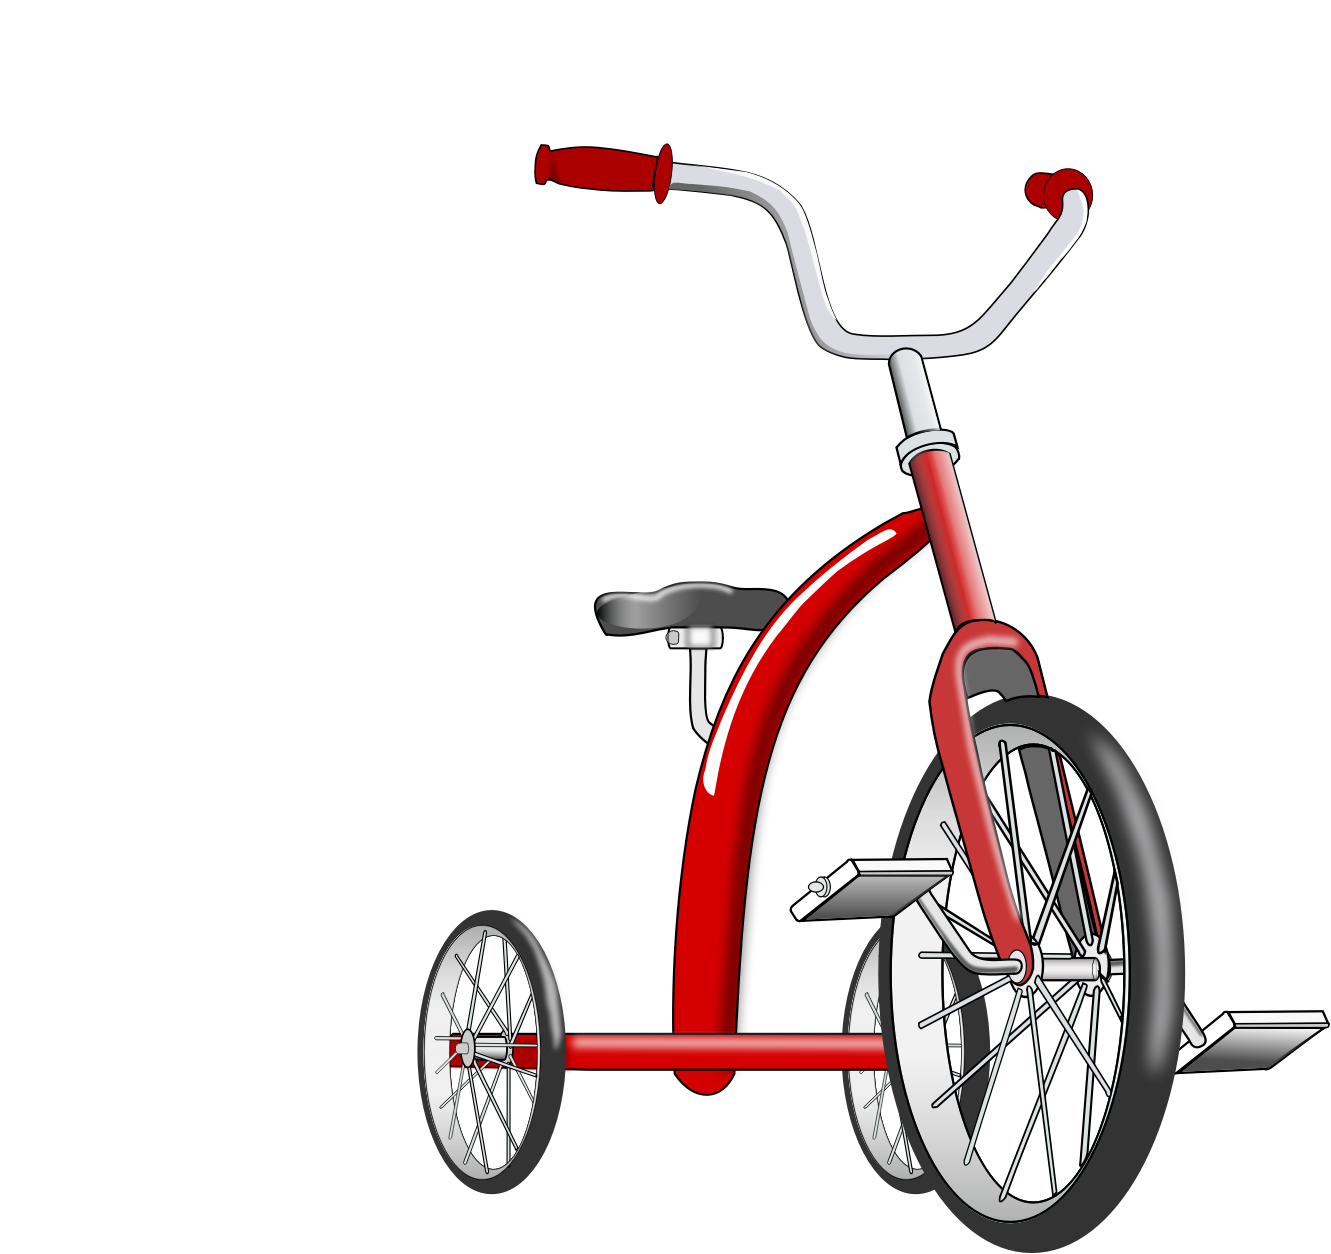 Large tricycle. Hd big image clipart